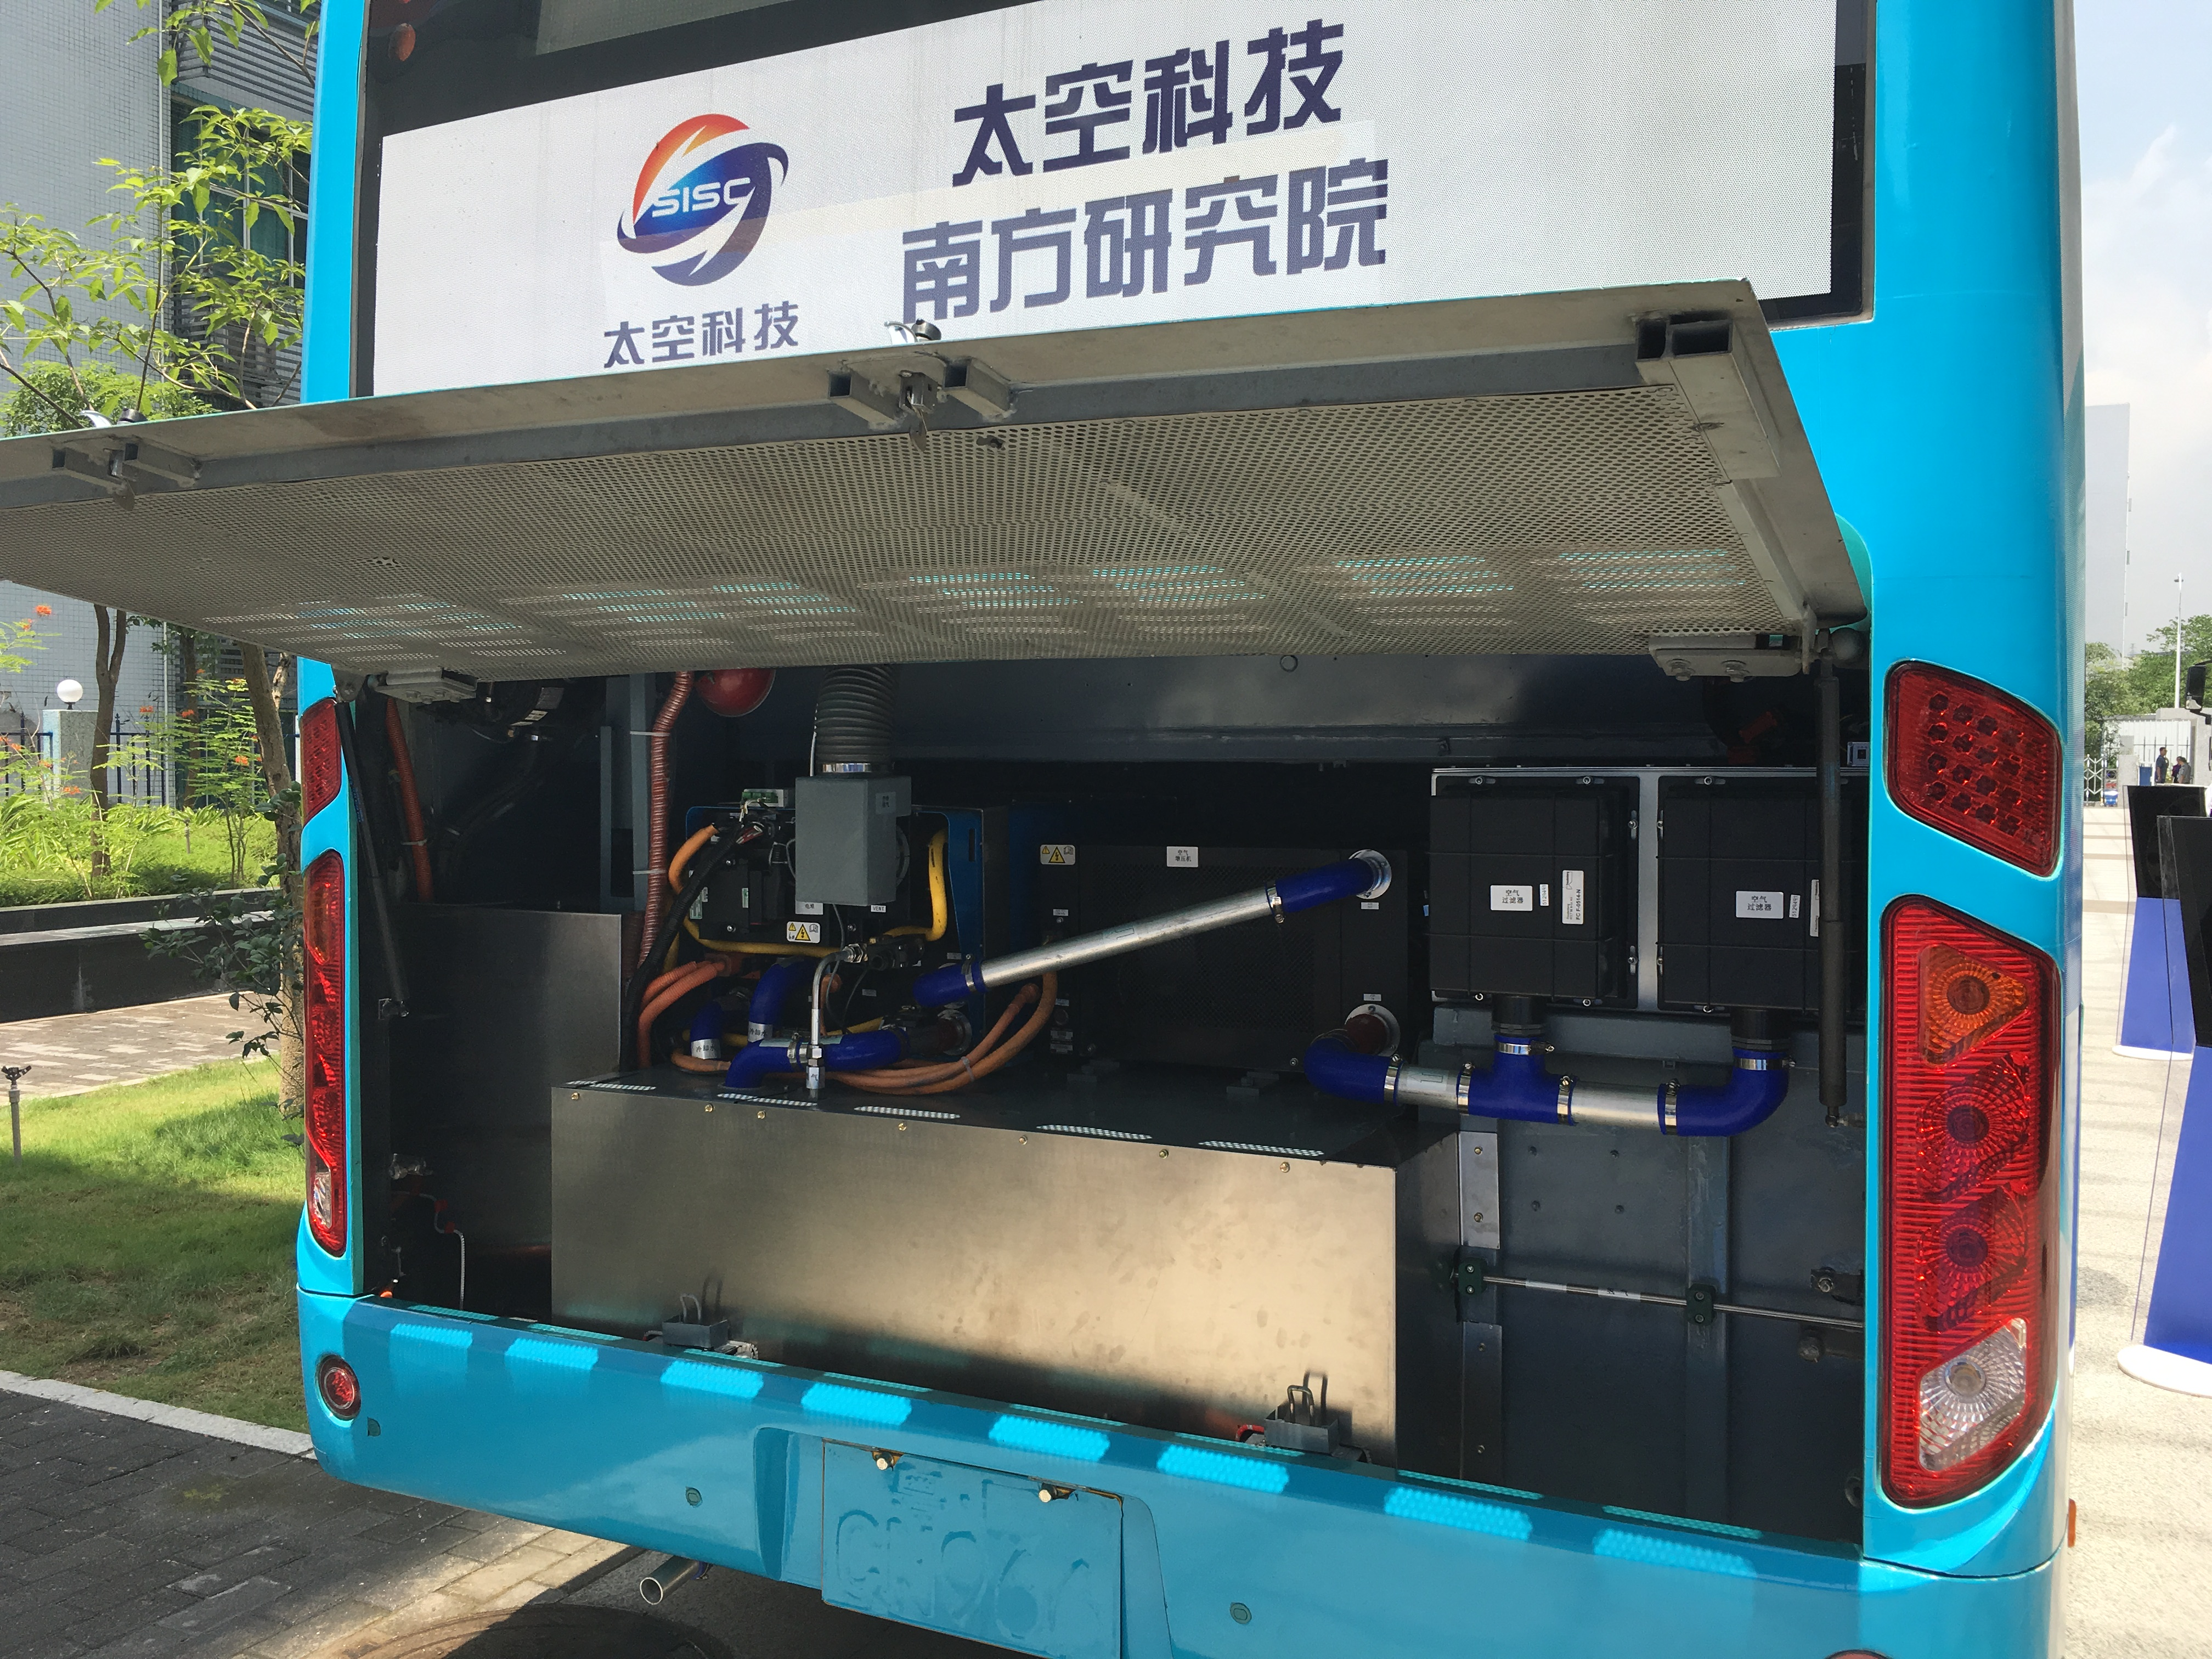 Hydrogen electric powered bus